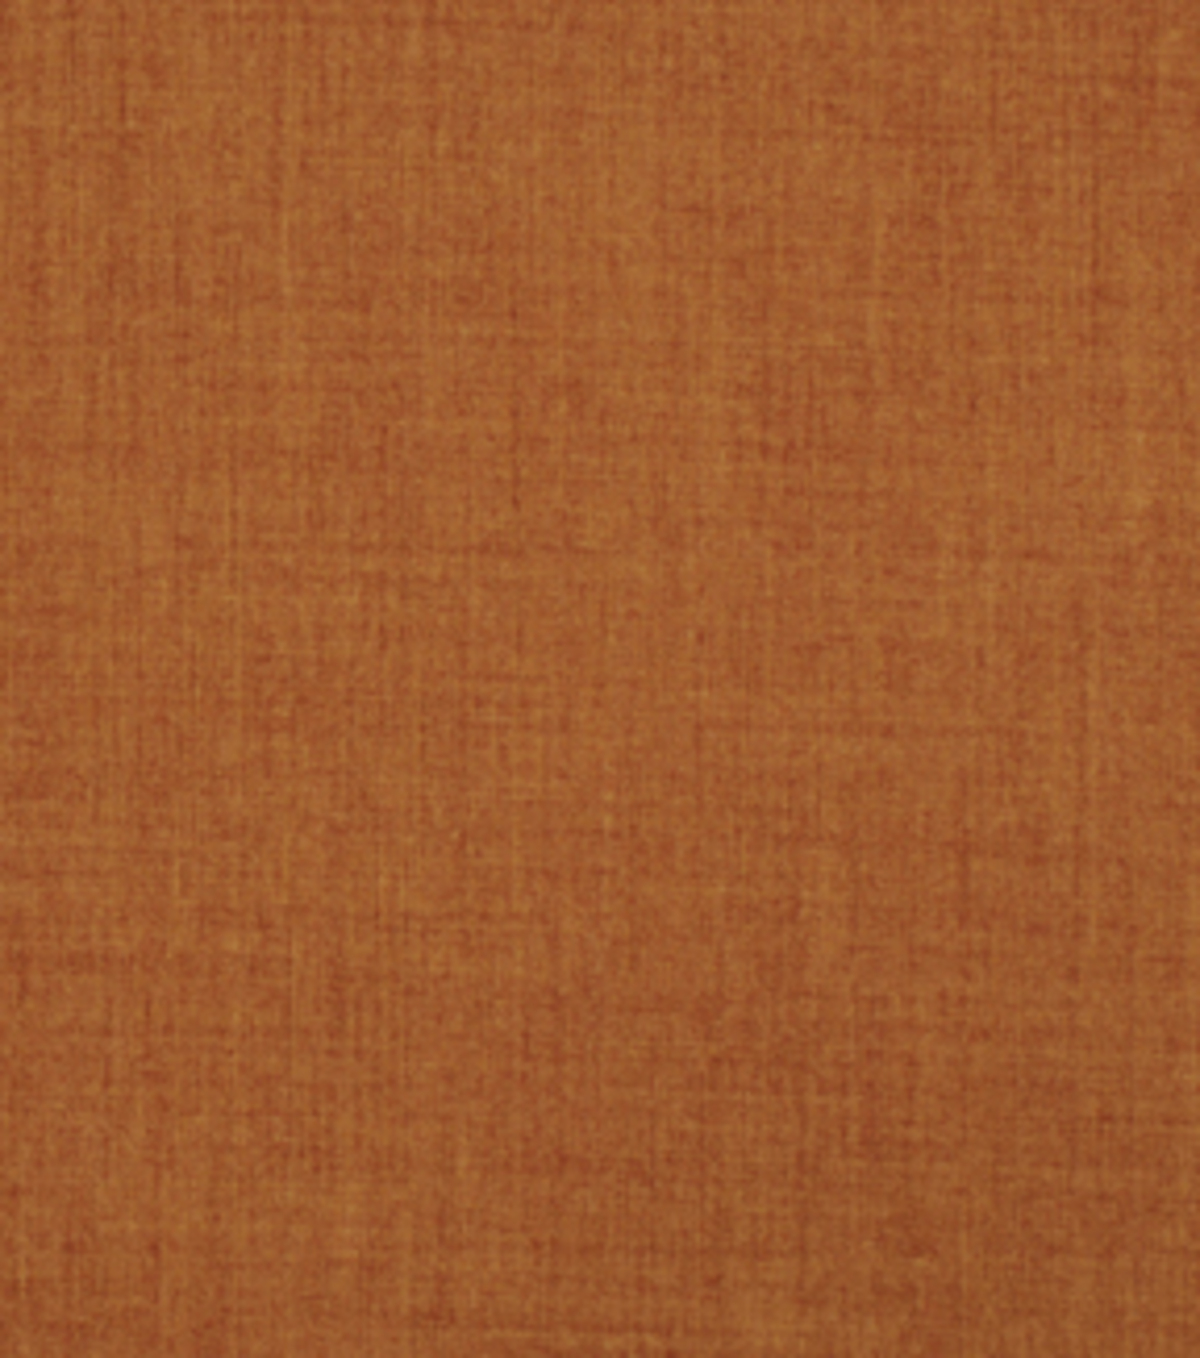 Home Decor 8\u0022x8\u0022 Fabric Swatch-Eaton Square Pause Autumn